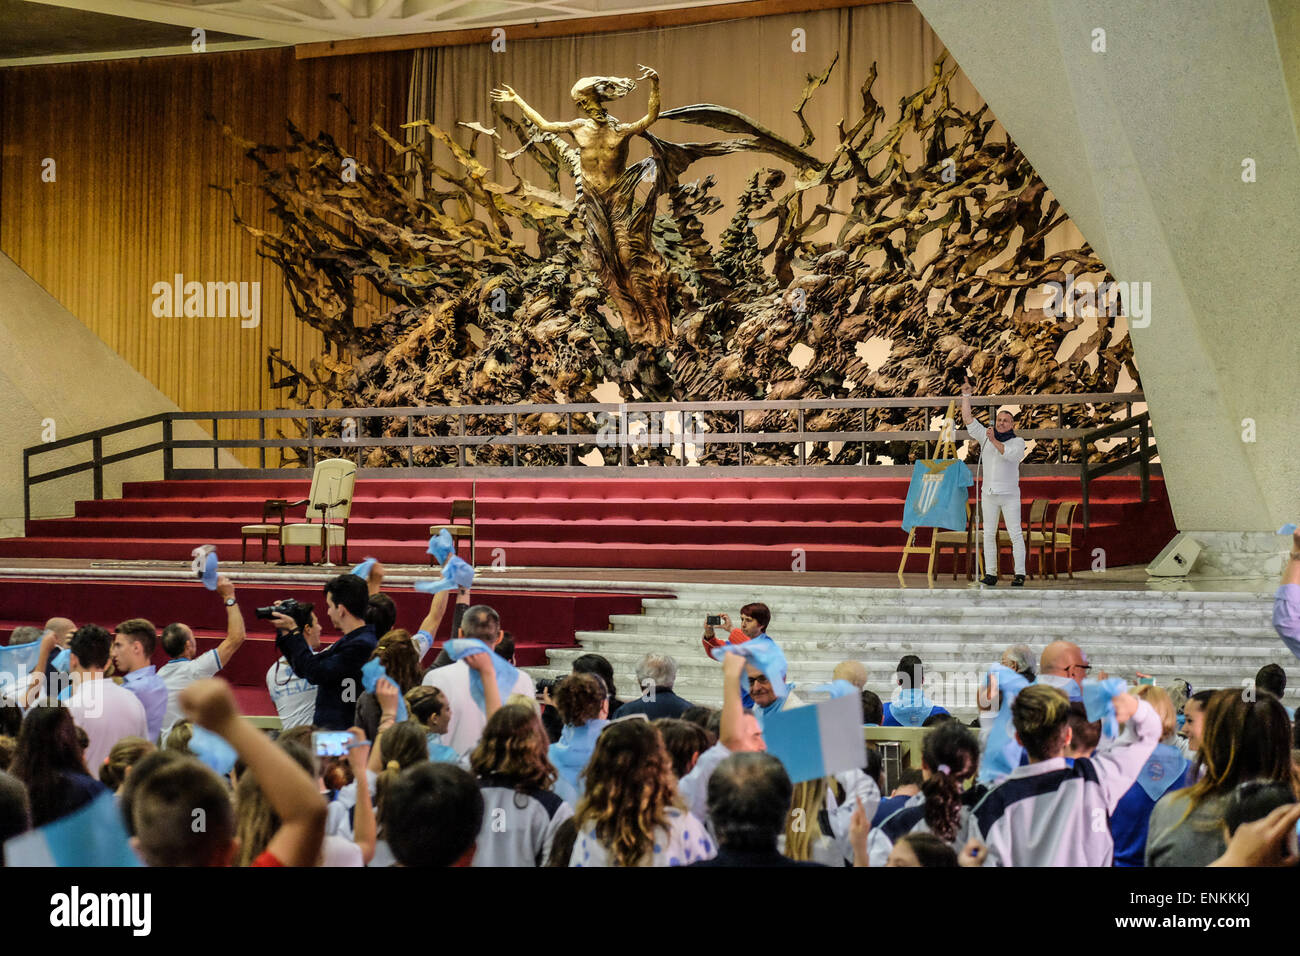 nervi-hall-vatican-city-7th-may-2015-the-football-club-ss-lazio-in-ENKKKJ.jpg